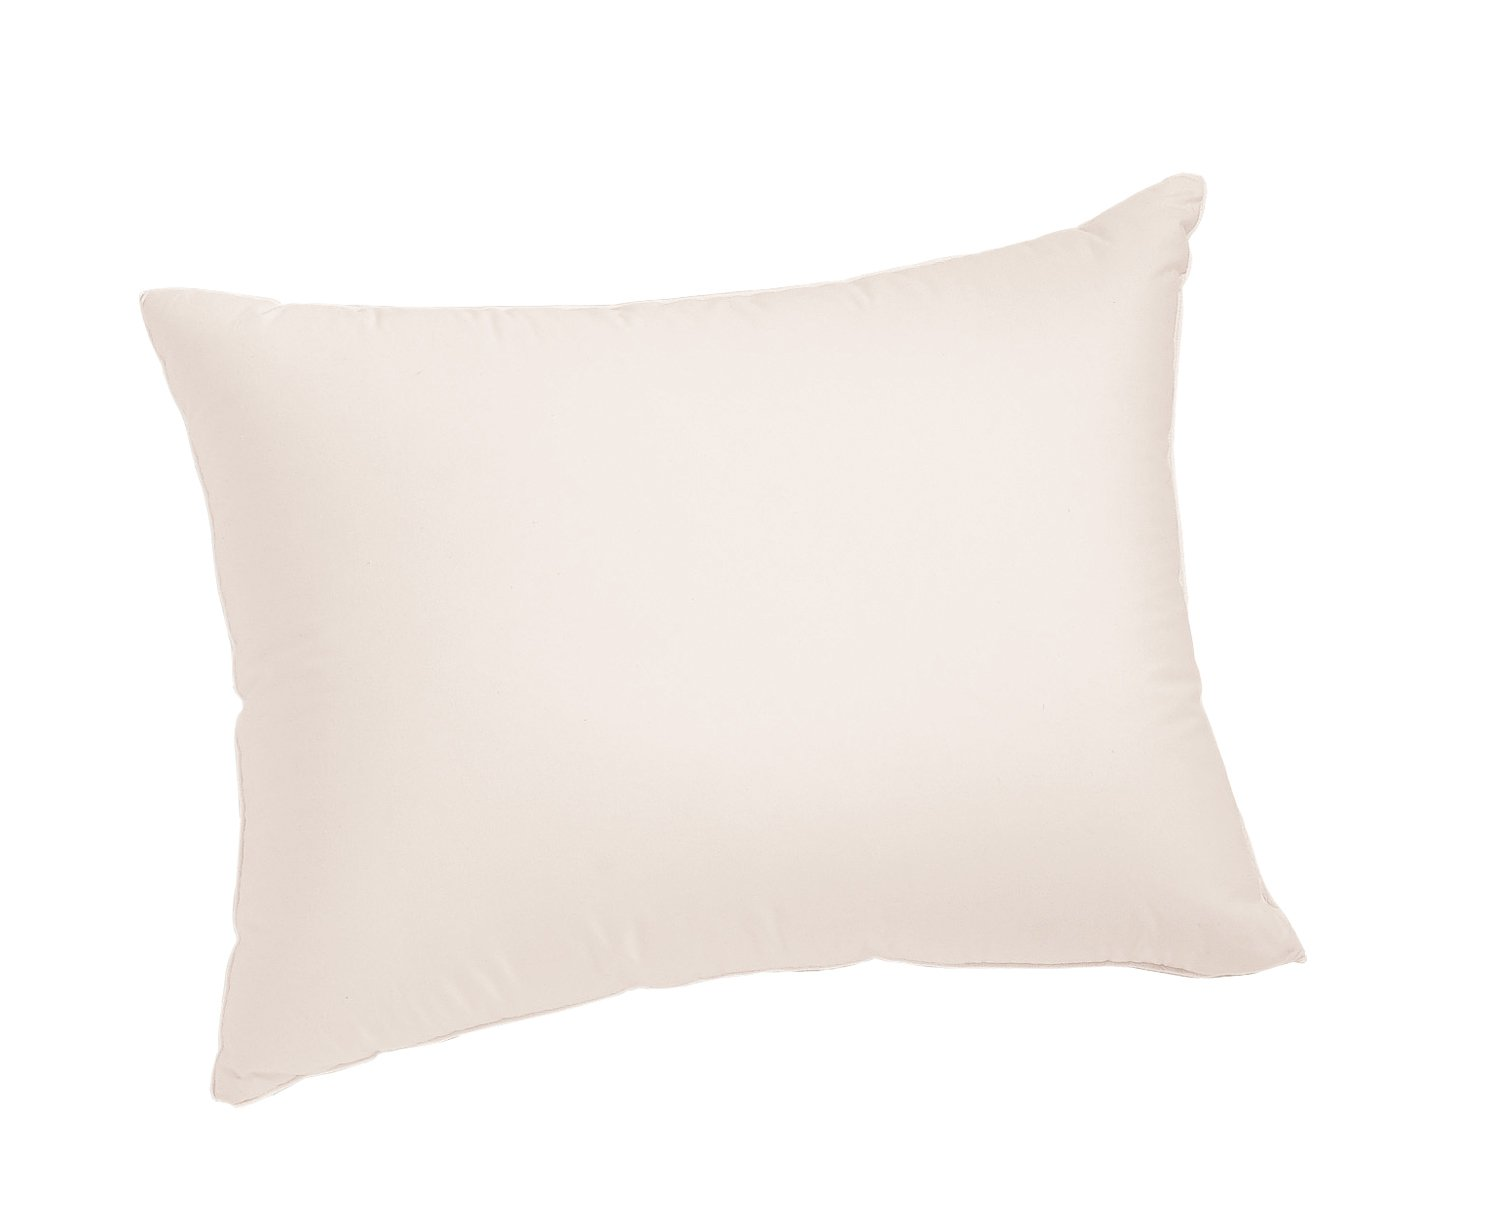 Cuddledown Duck Soft Pillow, King